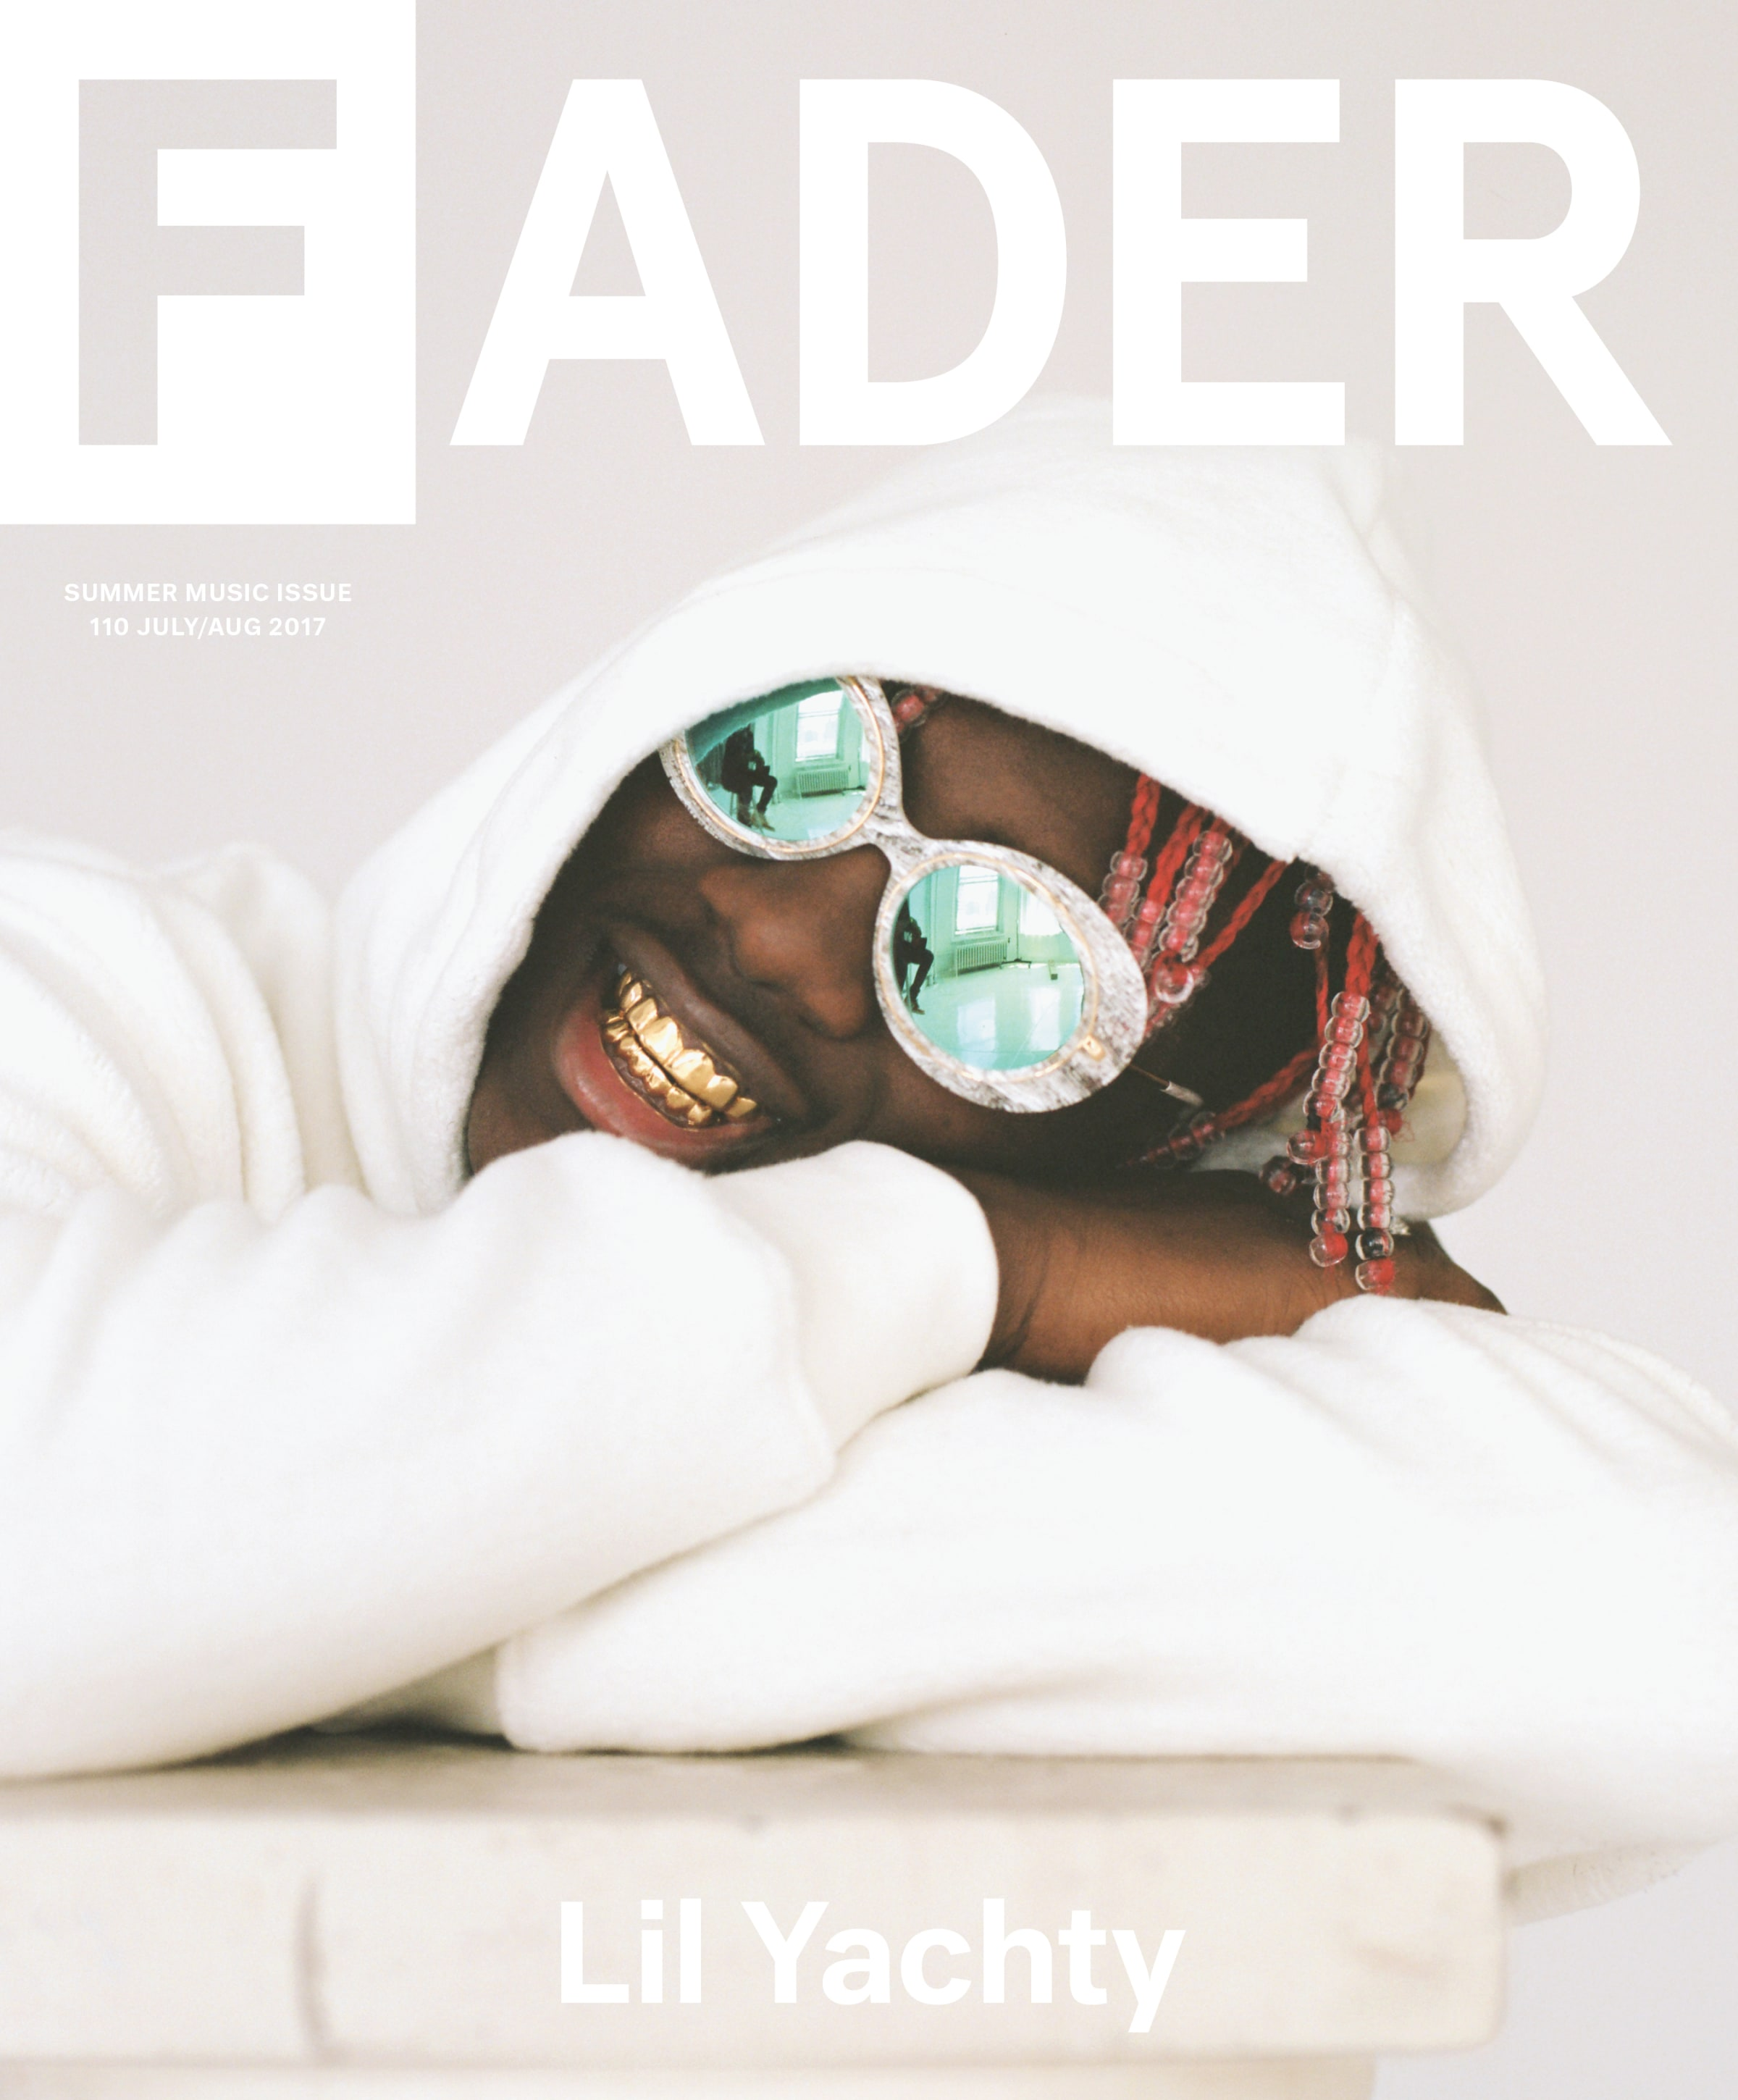 lil-yachty-cover-story-interview.jpg